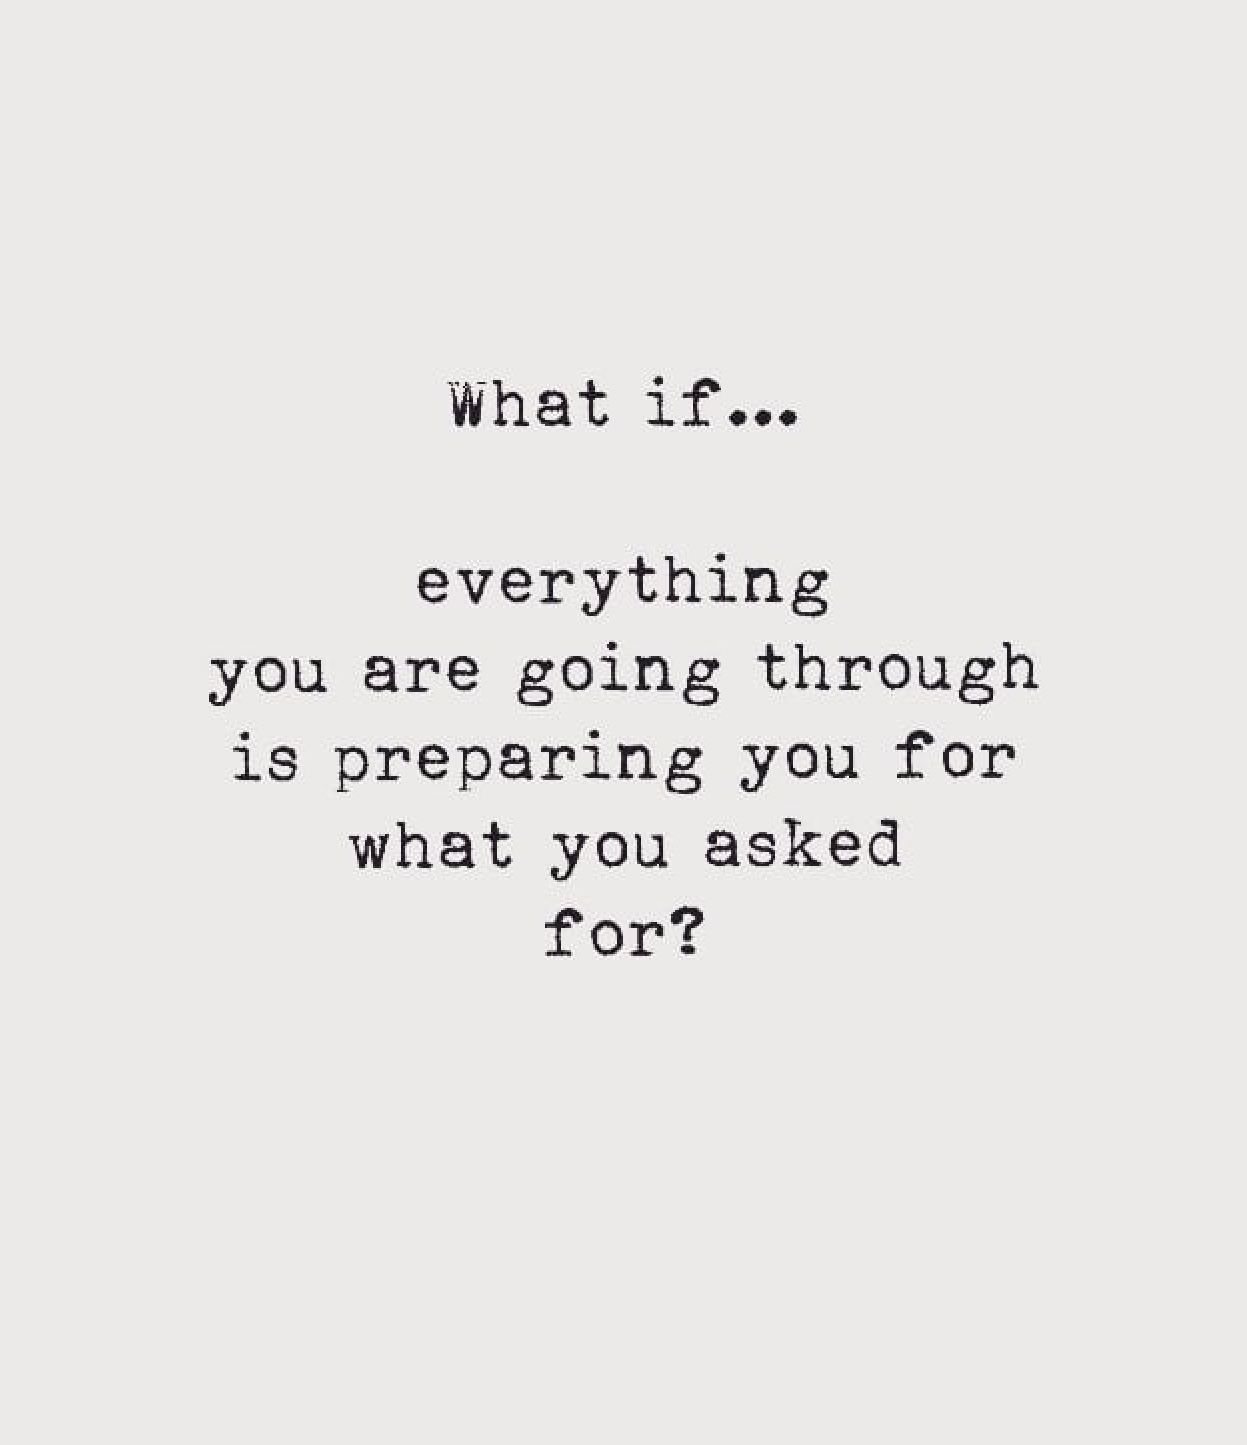 What if... everything you are going through is preparing you ...